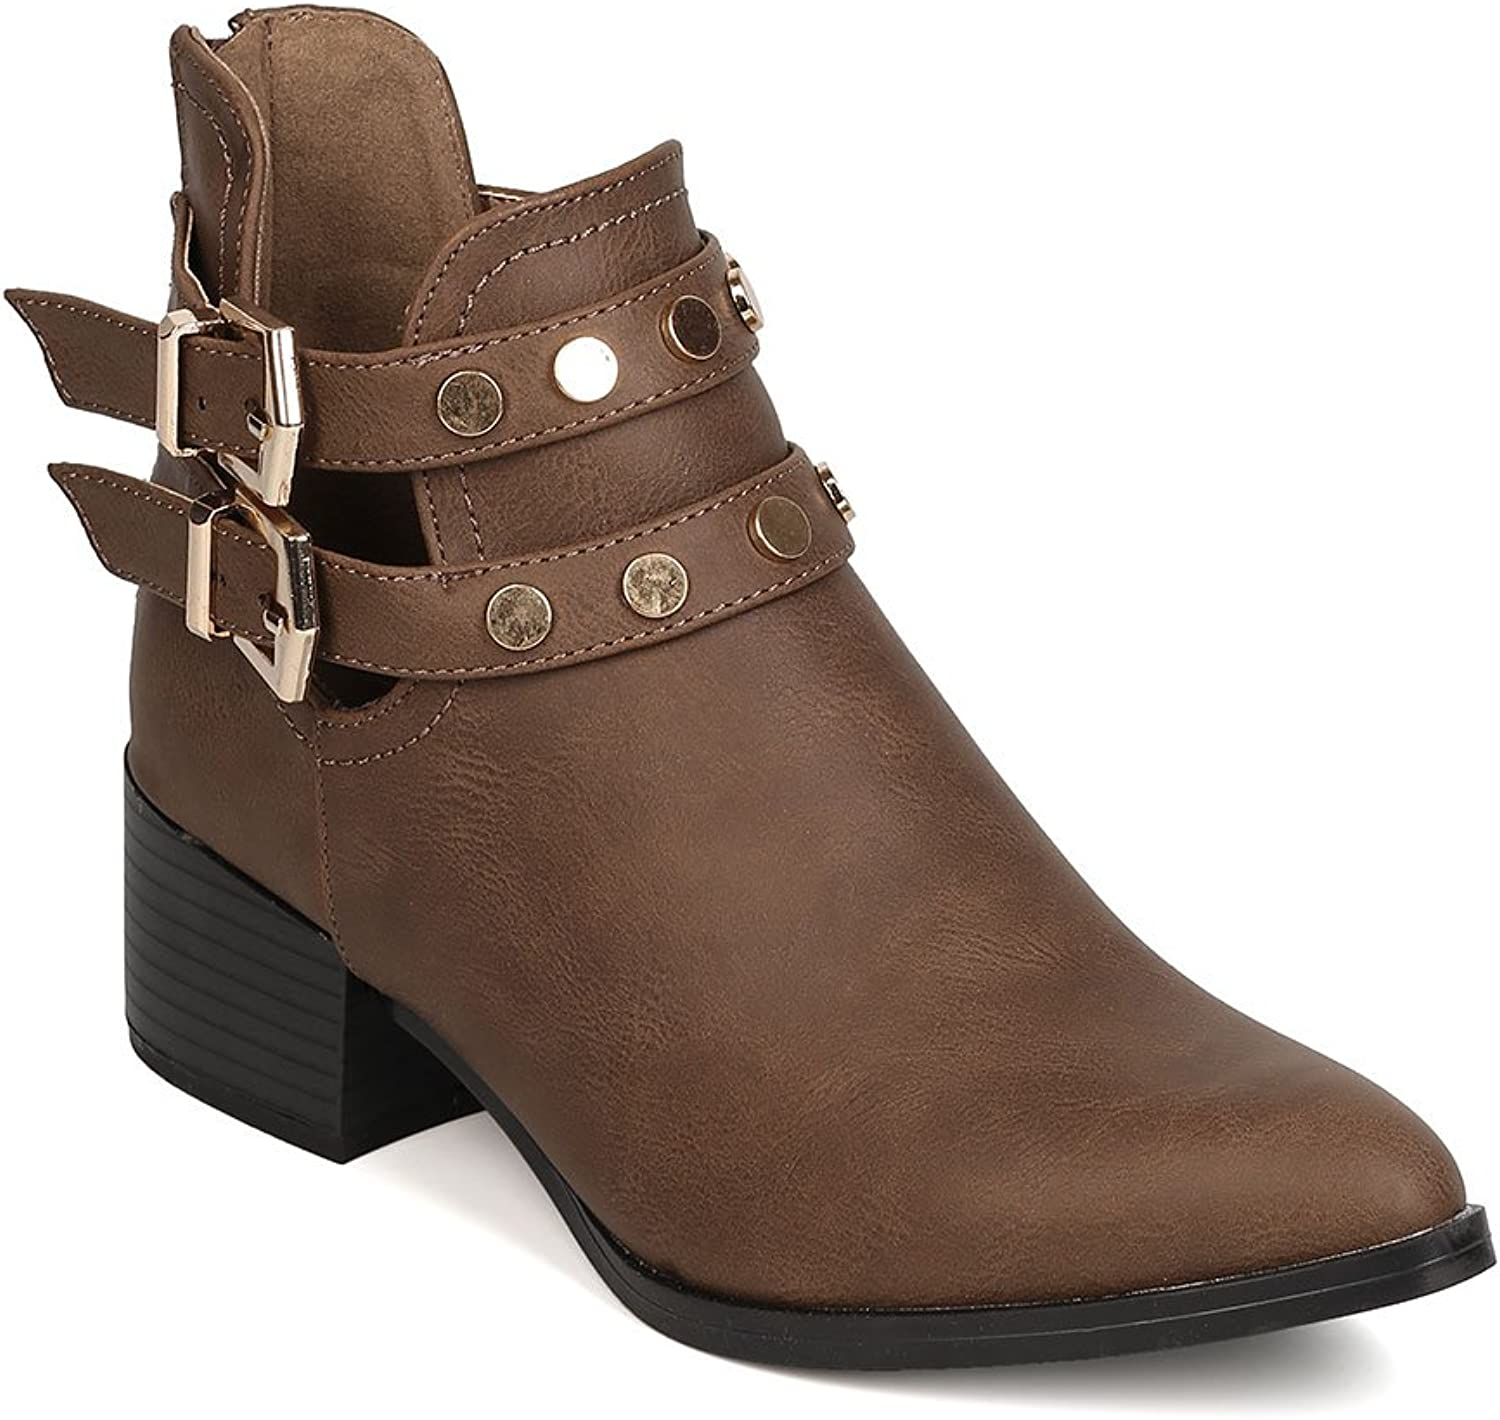 Qupid FC39 Leatherette Pointy Toe Studded Double Buckle Chunky Heel Cut Out Bootie FC89 - Taupe